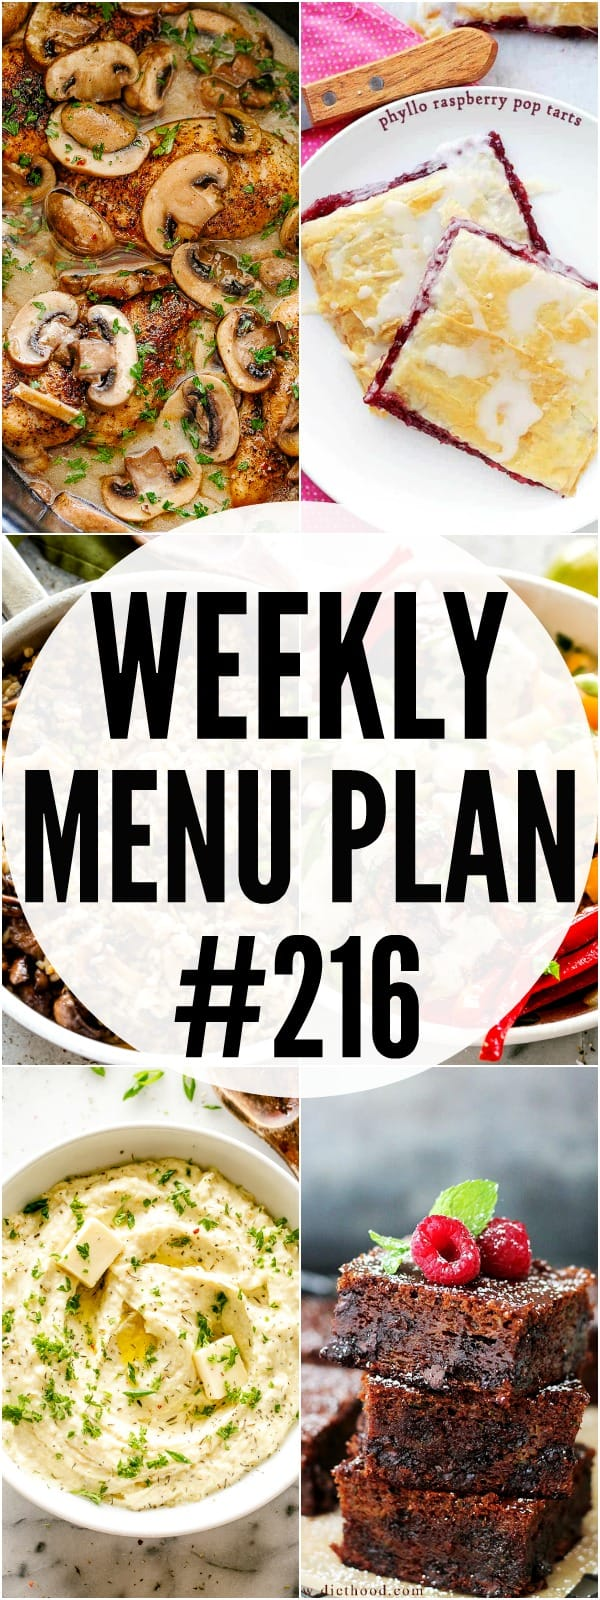 WEEKLY MENU PLAN #216 PIN IMAGE